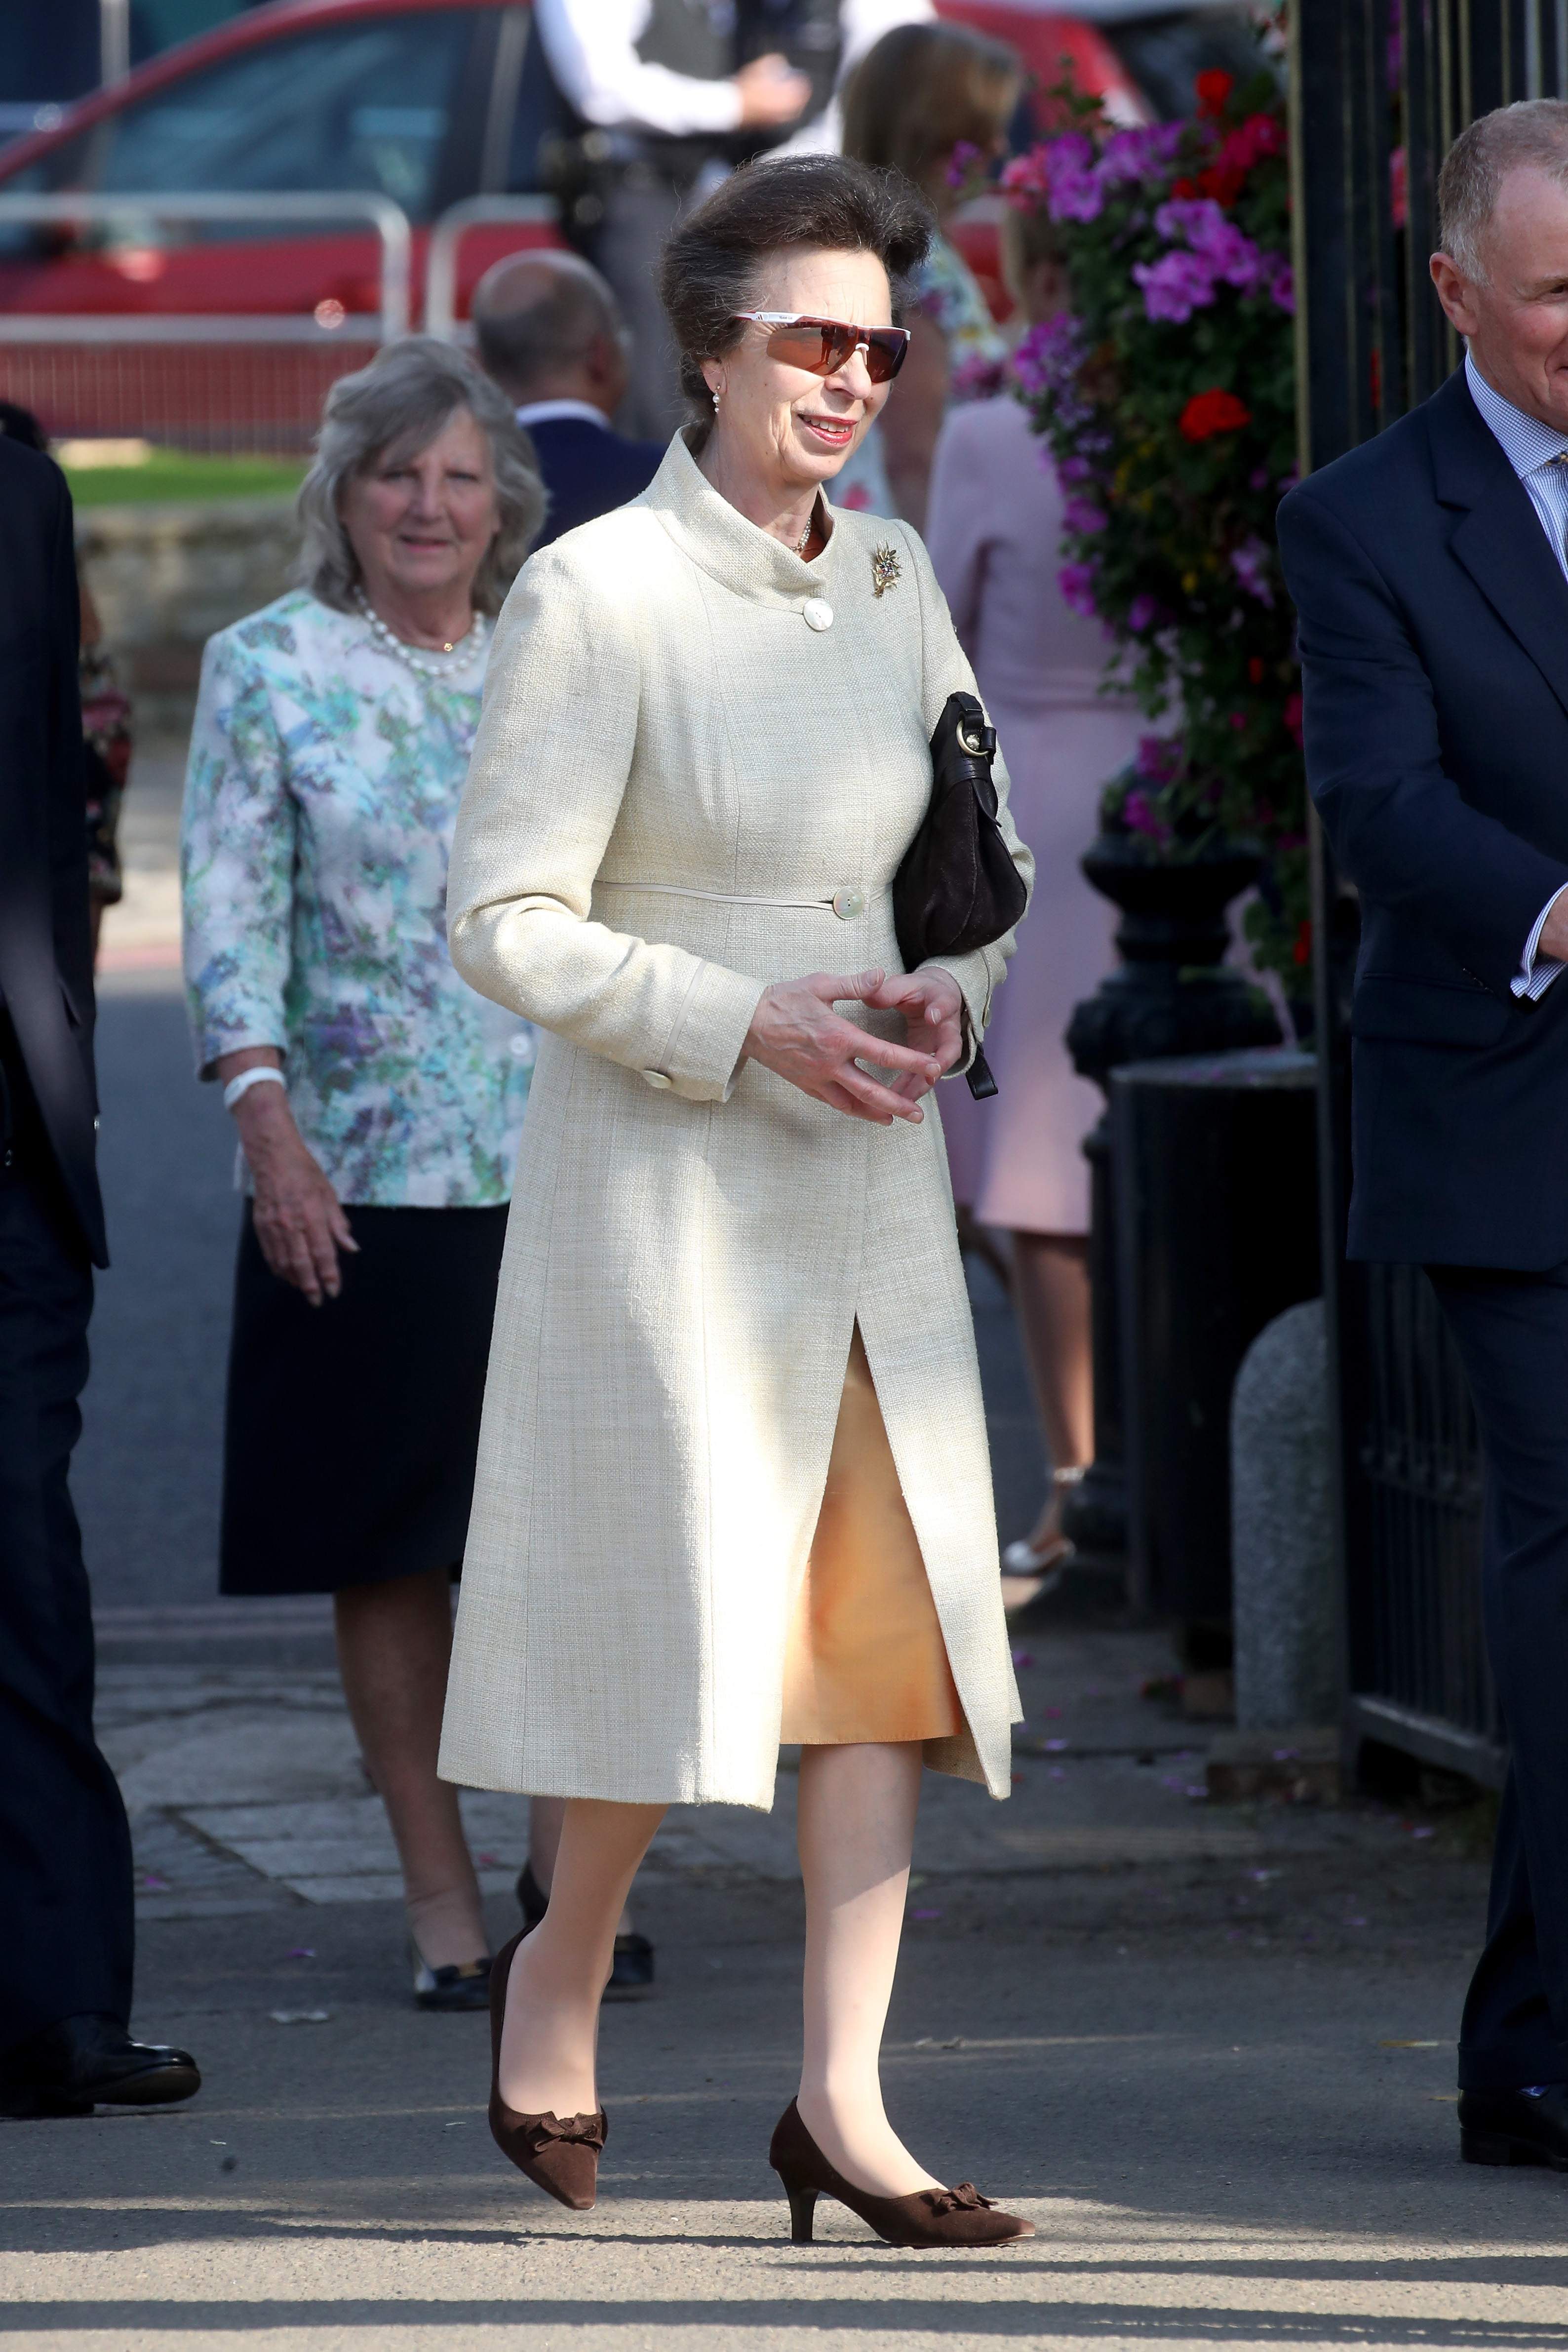 <p>Meghan Markle's Givenchy wedding gown may have taken the world by sartorial storm, but when it came to upping the ante with regal accessories, a different royal family member was turning heads.</p> <p>Princess Anne, the only daughter of The Queen and The Duke of Edinburgh, attended the annual Chelsea Flower show earlier this week with not a tiara or gloves but a pair of sporty Adidas sunglasses, that could easily pass as your run-of-the-mill speed dealers.<br> <br> The glasses gave her cream coat and brown pumps an edgy boost and given that the specs often come with polarised lenses, we are sure the 67-year-old's eyes would be more than protected from the sun.</p> <p>Princess Anne isn't the only one to win in the style stakes this week. Victoria Beckham, Taylor Swift, the cast of<em> Oceans 8</em> and of course the Duchess of Sussex gave us plenty to talk about.</p> <p>Click through to see the most talked about looks of the week.</p>